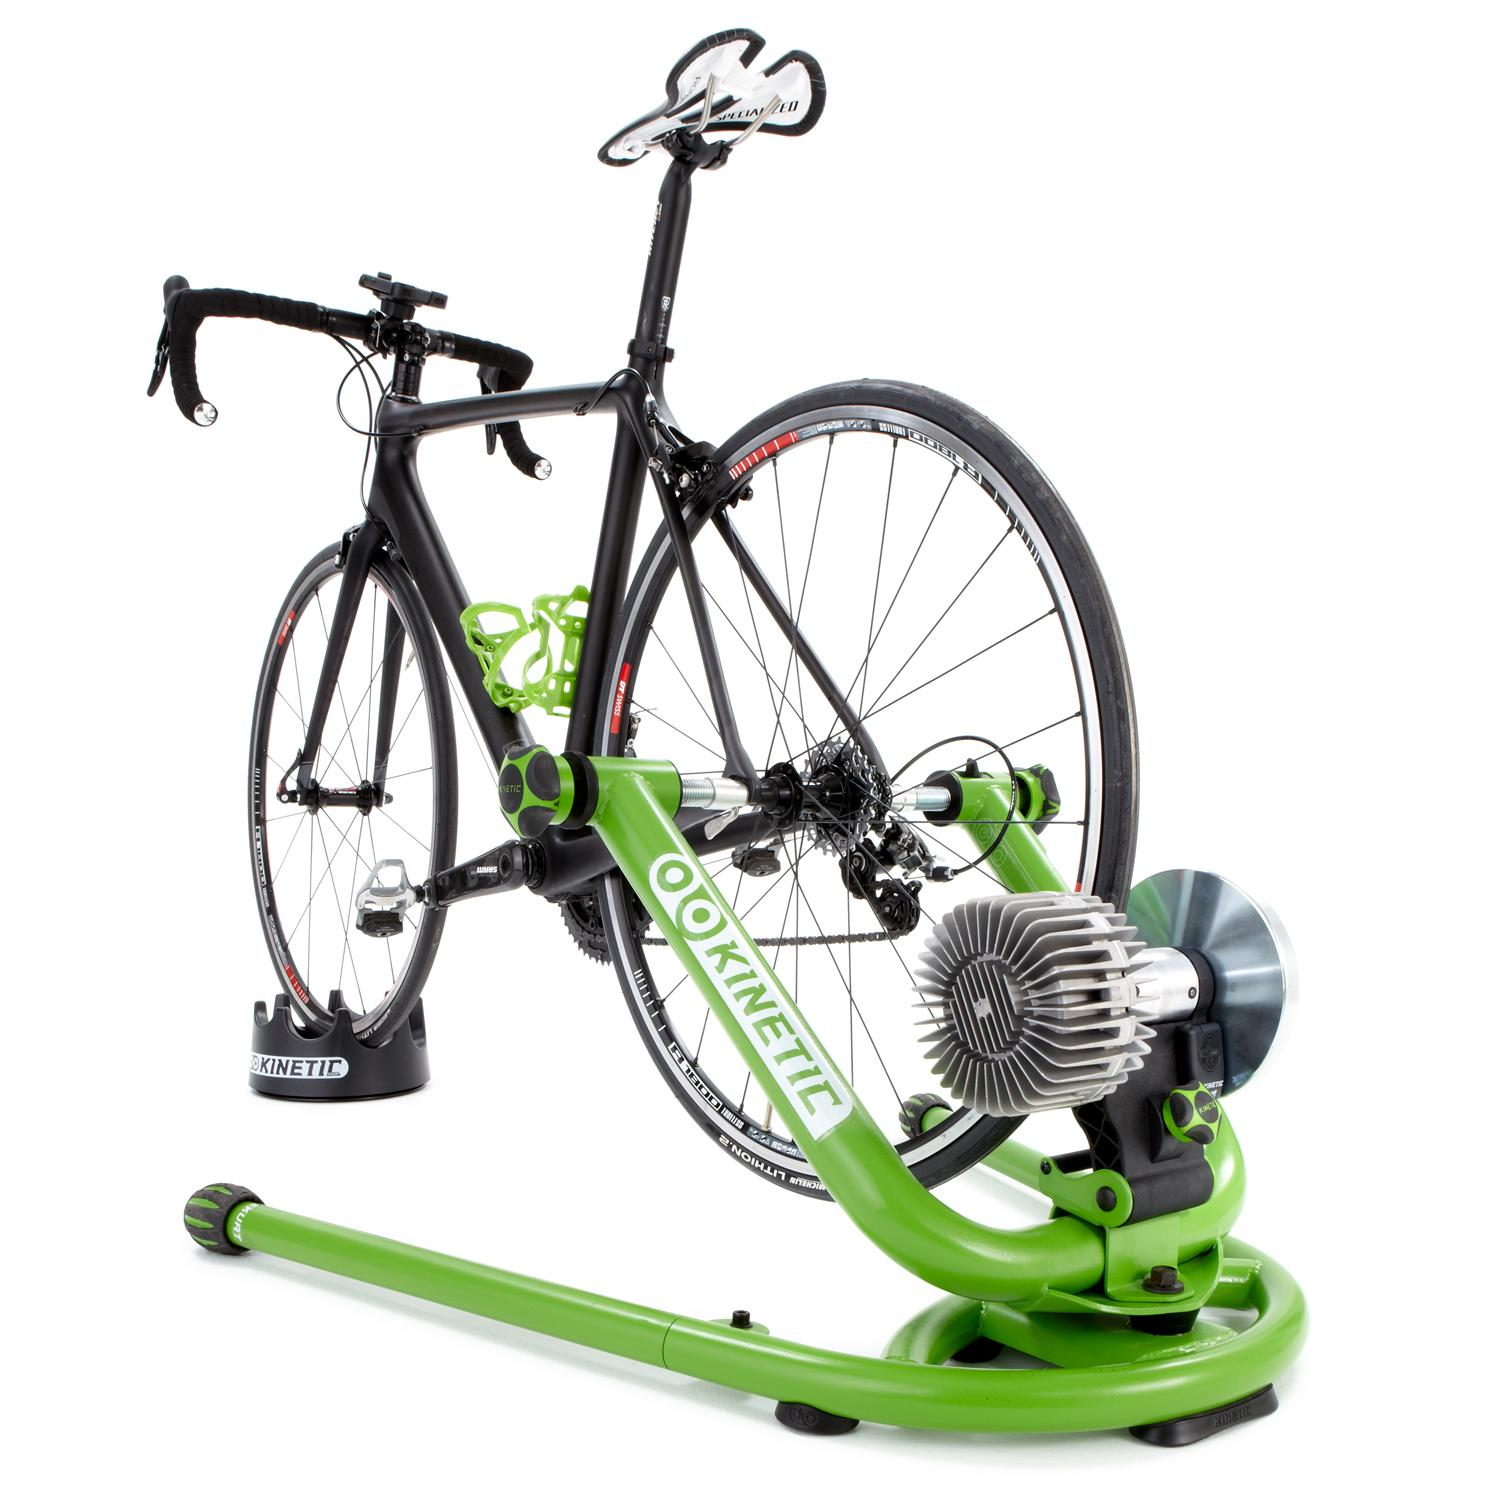 Smart Trainer Cycling Amazon Com: Amazon.com : Kinetic Rock And Roll Smart Bike Trainer